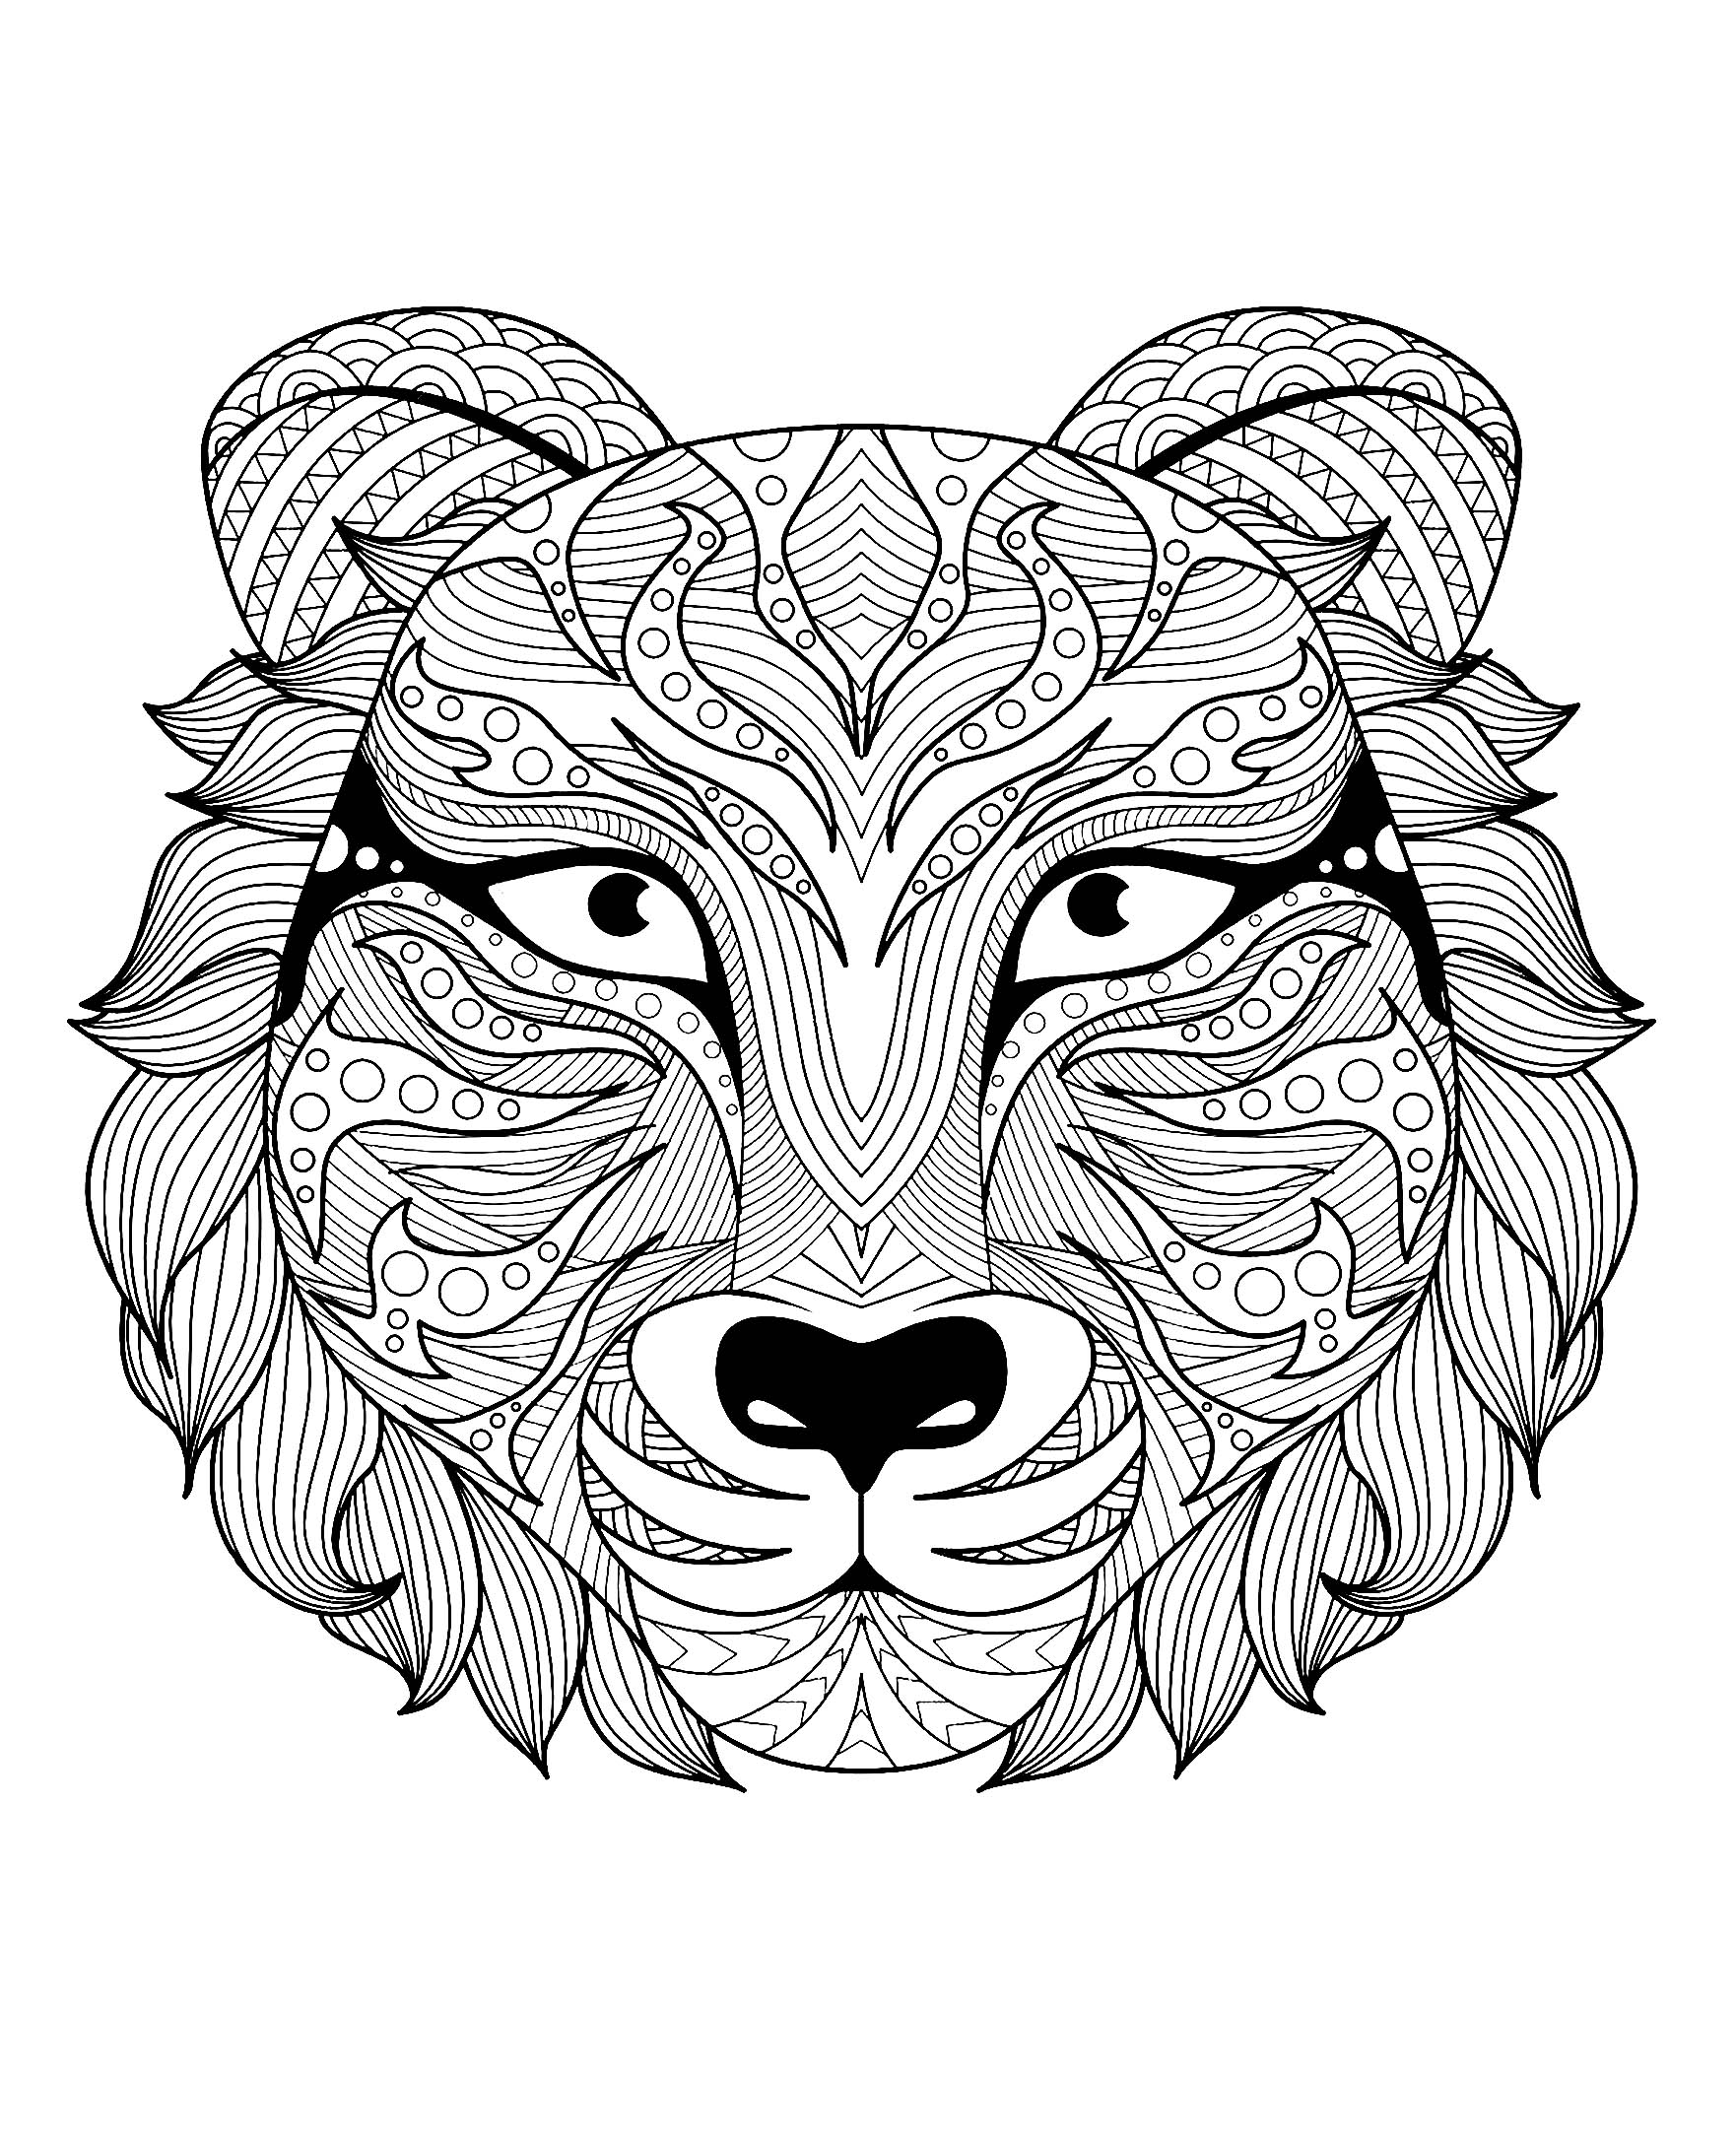 coloring page tiger tigers coloring pages coloring kids coloring kids coloring tiger page